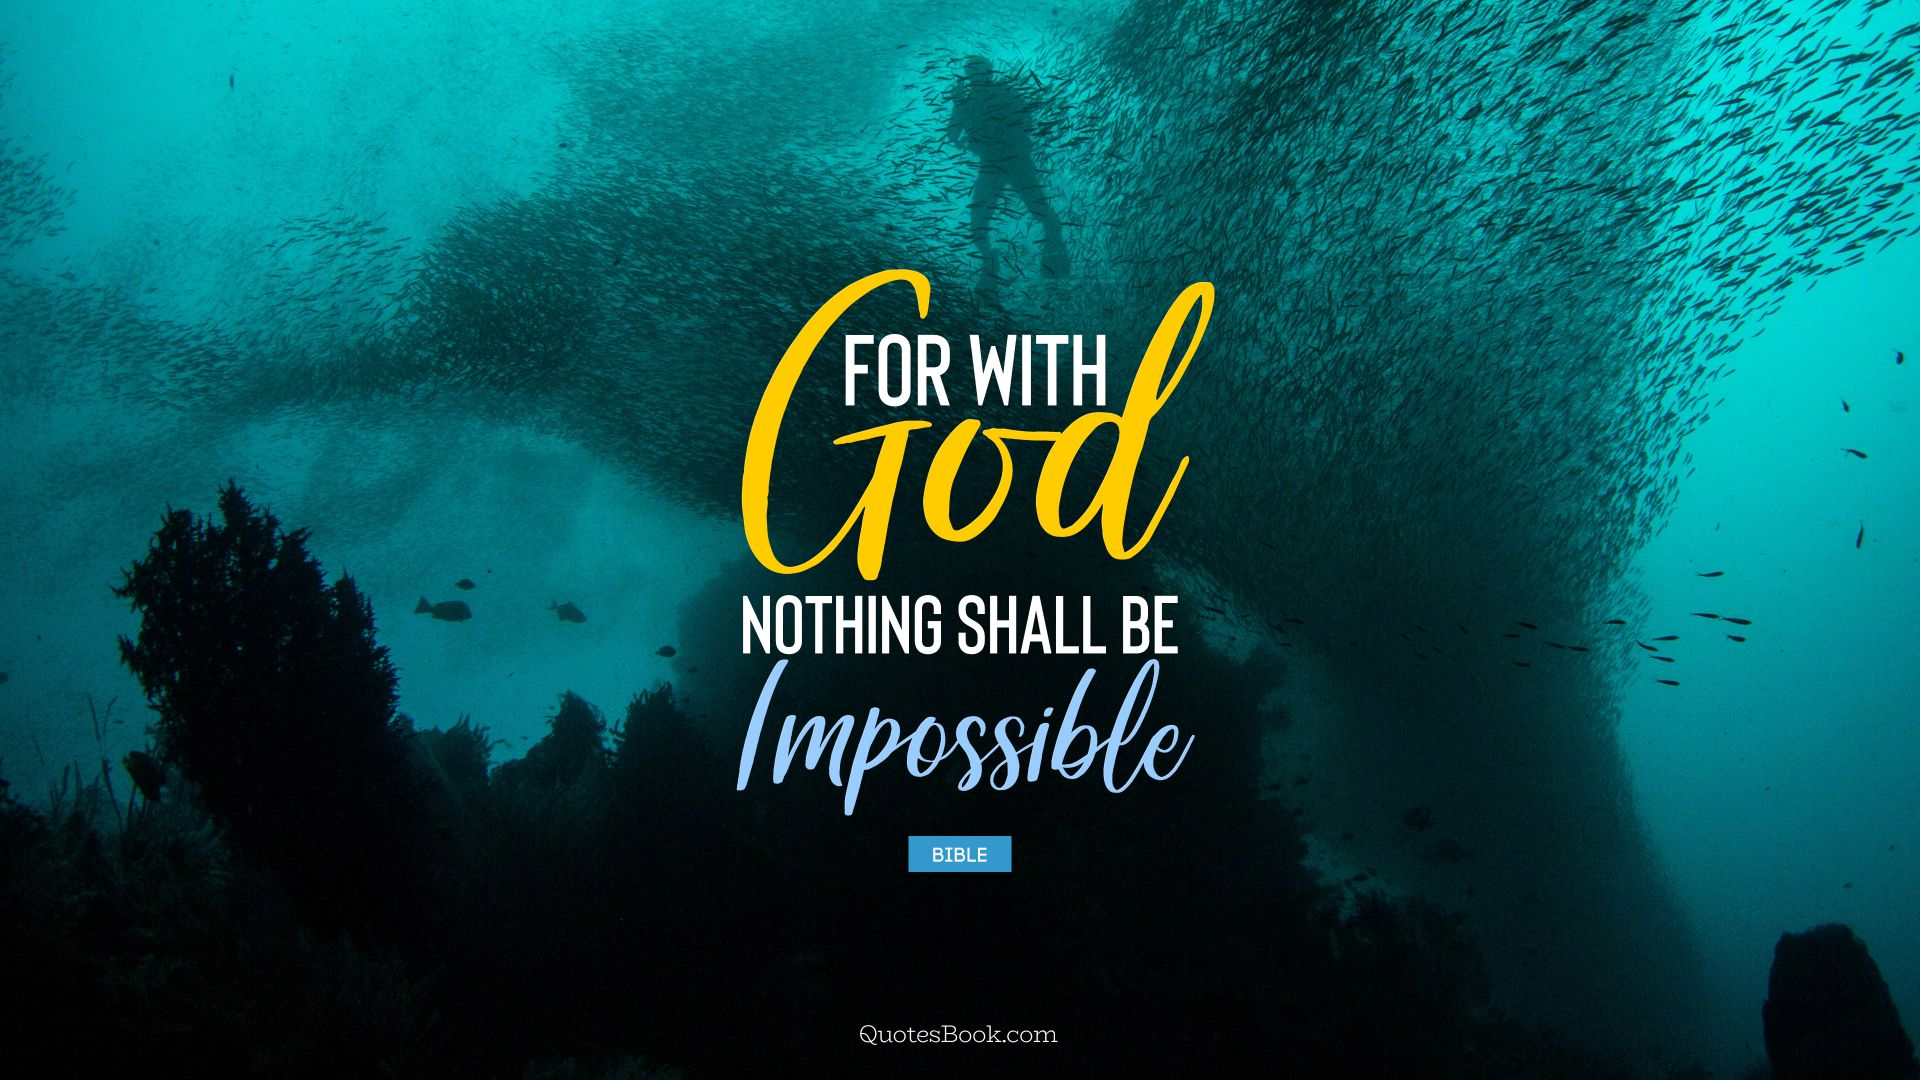 For With God Nothing Shall Be Impossible Quote By Bible Page 5 Quotesbook